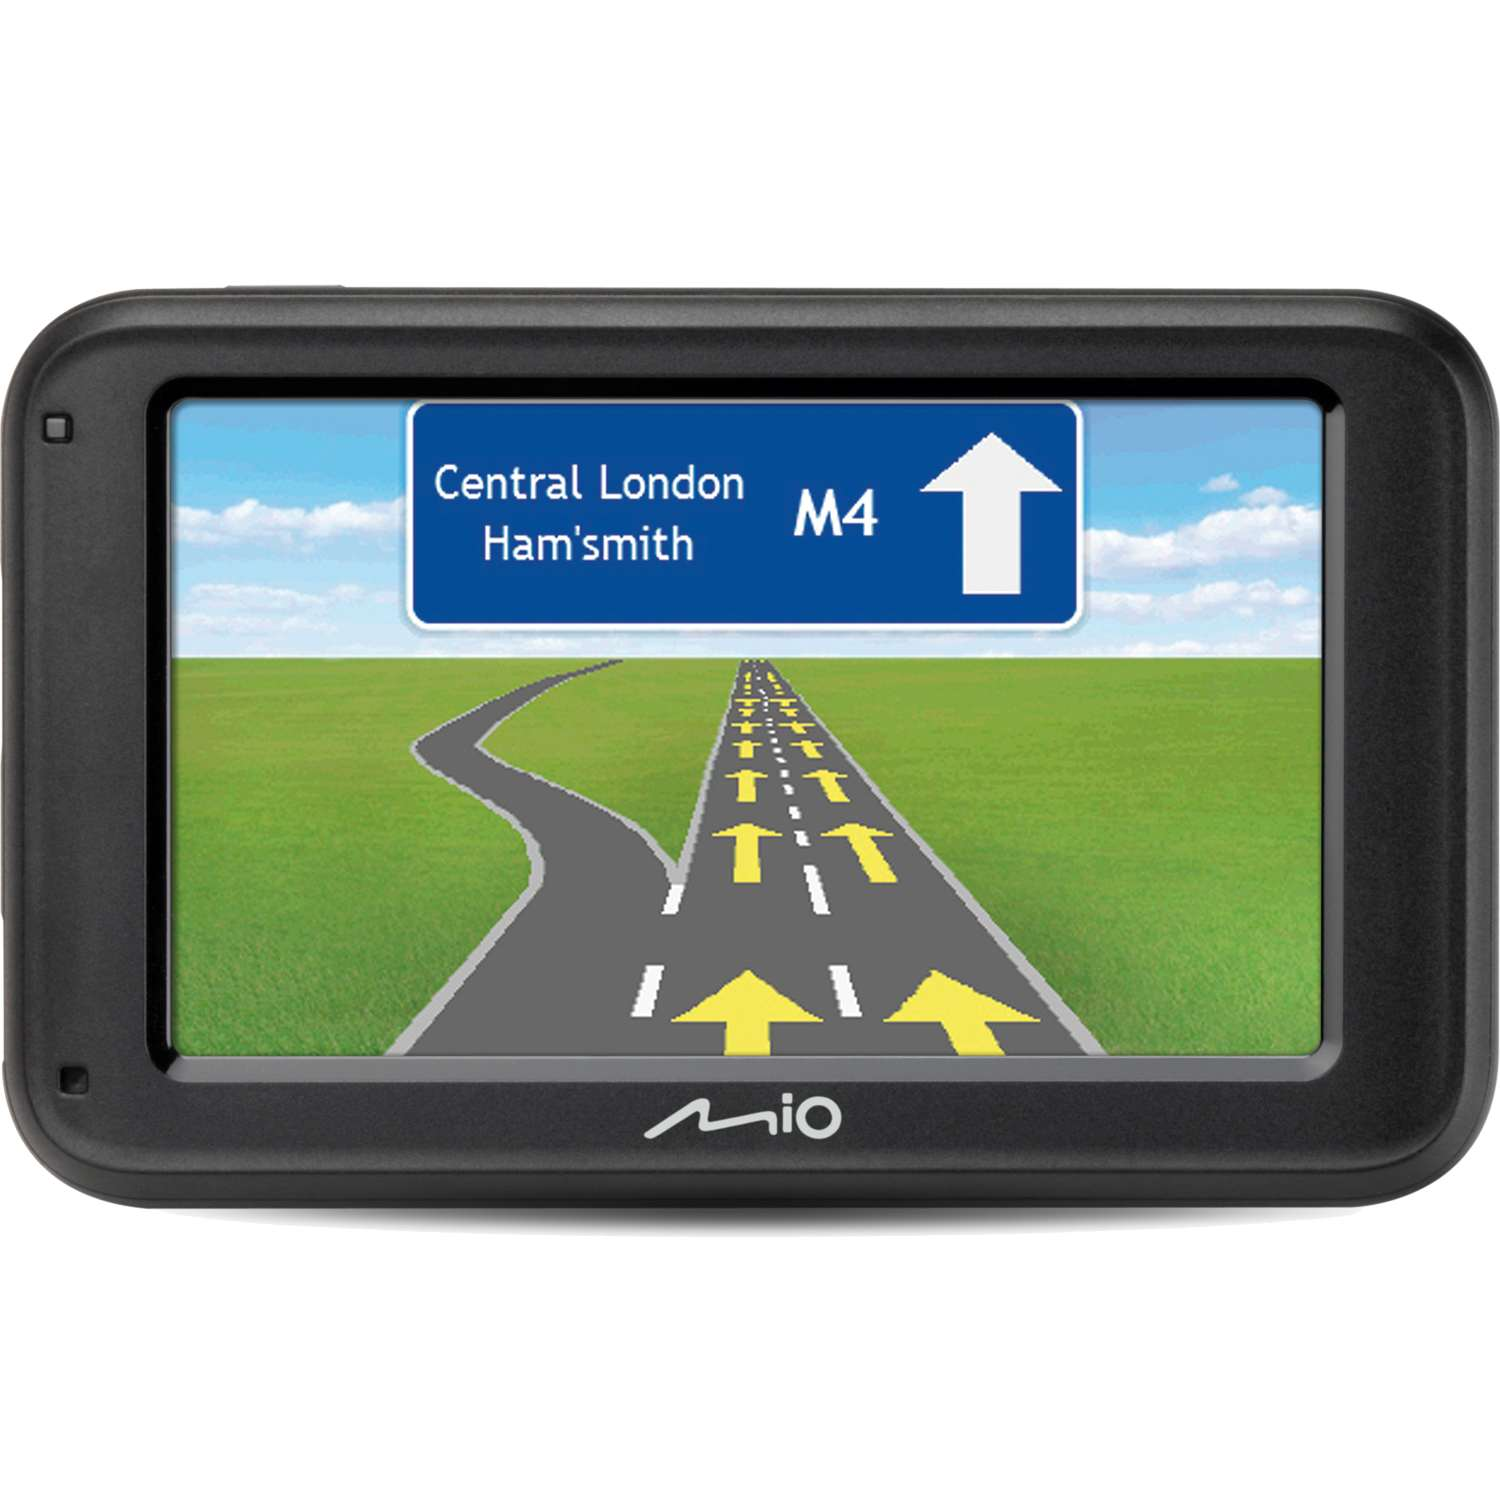 Tomtom Gps Navigation Traffic Android Apps On Google Play Tomtom Gps Map Of Usa Free